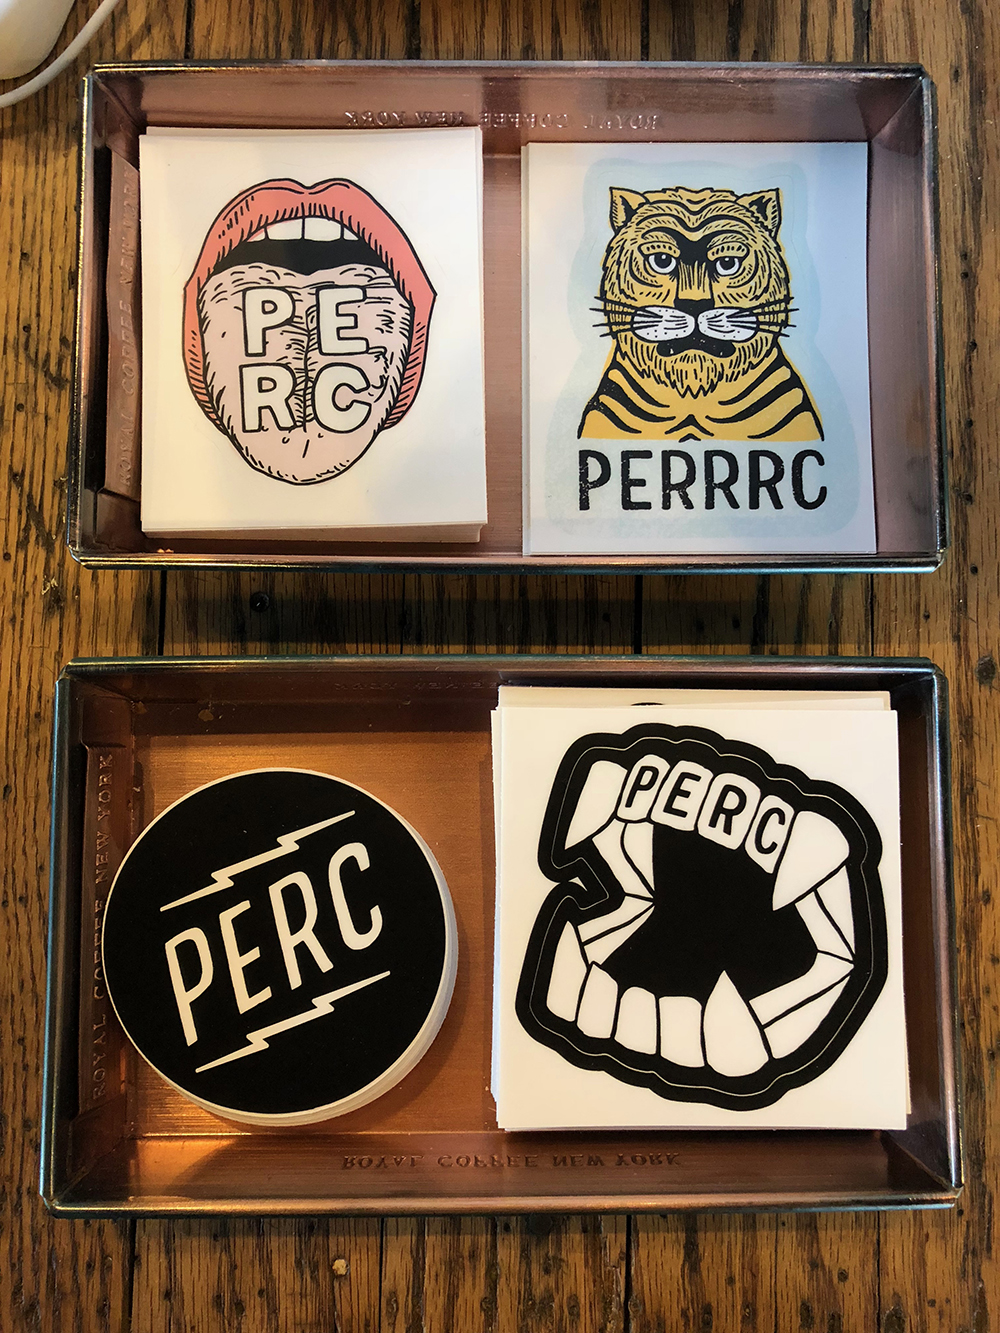 Loads of PERC stickers by yours truly